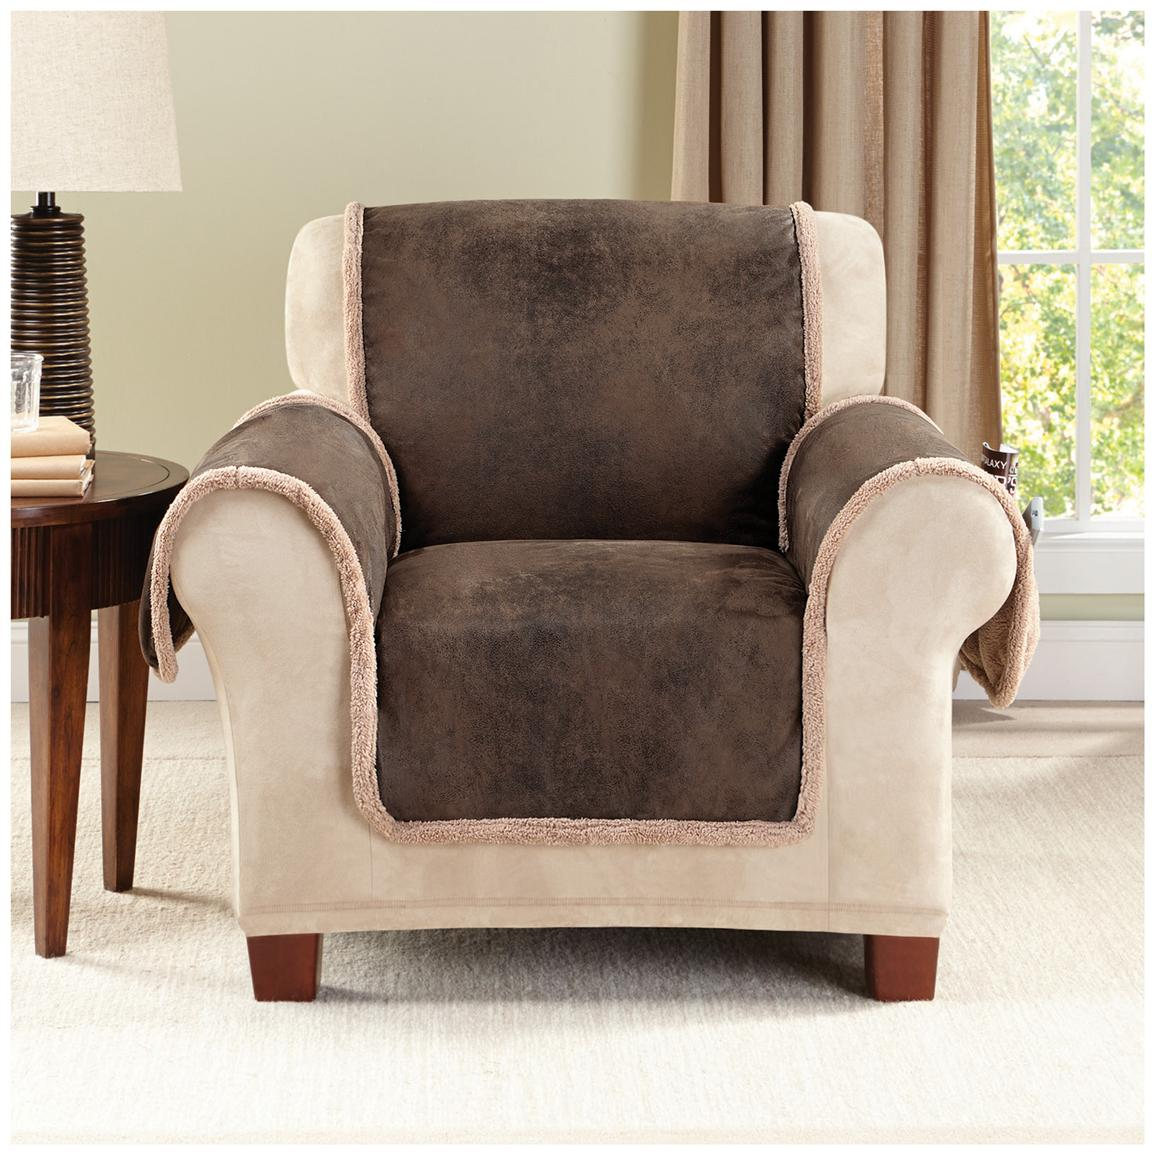 Recliner sofa covers home furniture design for Chair back covers for leather chairs